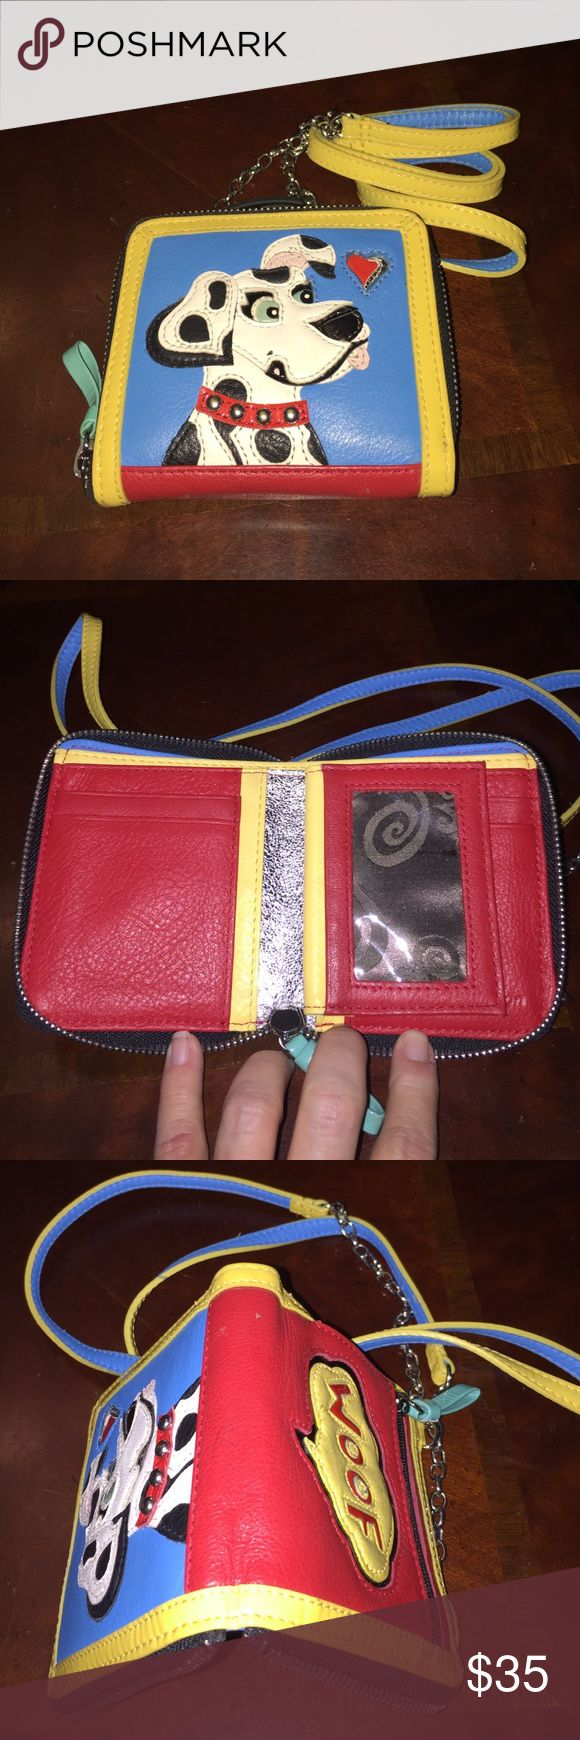 Brighton Dog Wallet/Cross Body Purse. Very Unique! Authentic Brighton Dog Leather Cross Body Purse/Wallet. Room for 2 ID's, 4 credit cards, coins, 2 places for bills, 2 hidden pockets. Zips closed. Features removable strap. Can be used as a cross body purse or a wallet. Very unique piece. Super cute! No longer in production. Purchased 15 years ago. Barely used. Brighton Bags Crossbody Bags